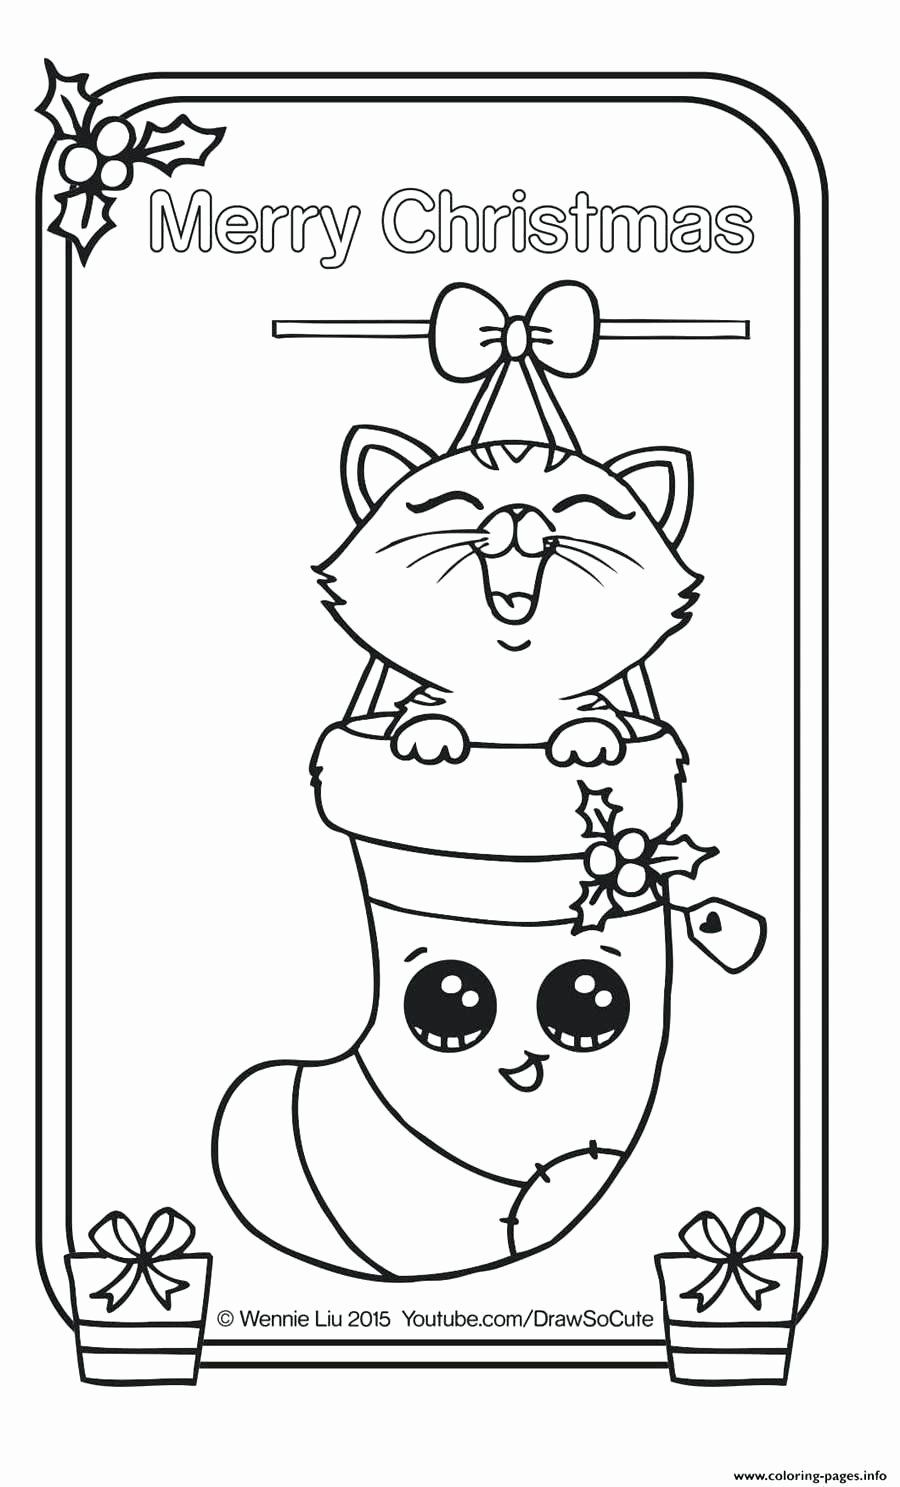 Coloring Pages Of Animals Youtube Best Of Merry Christmas Card Coloring Page Cute Coloring Pages Printable Christmas Coloring Pages Printable Christmas Cards